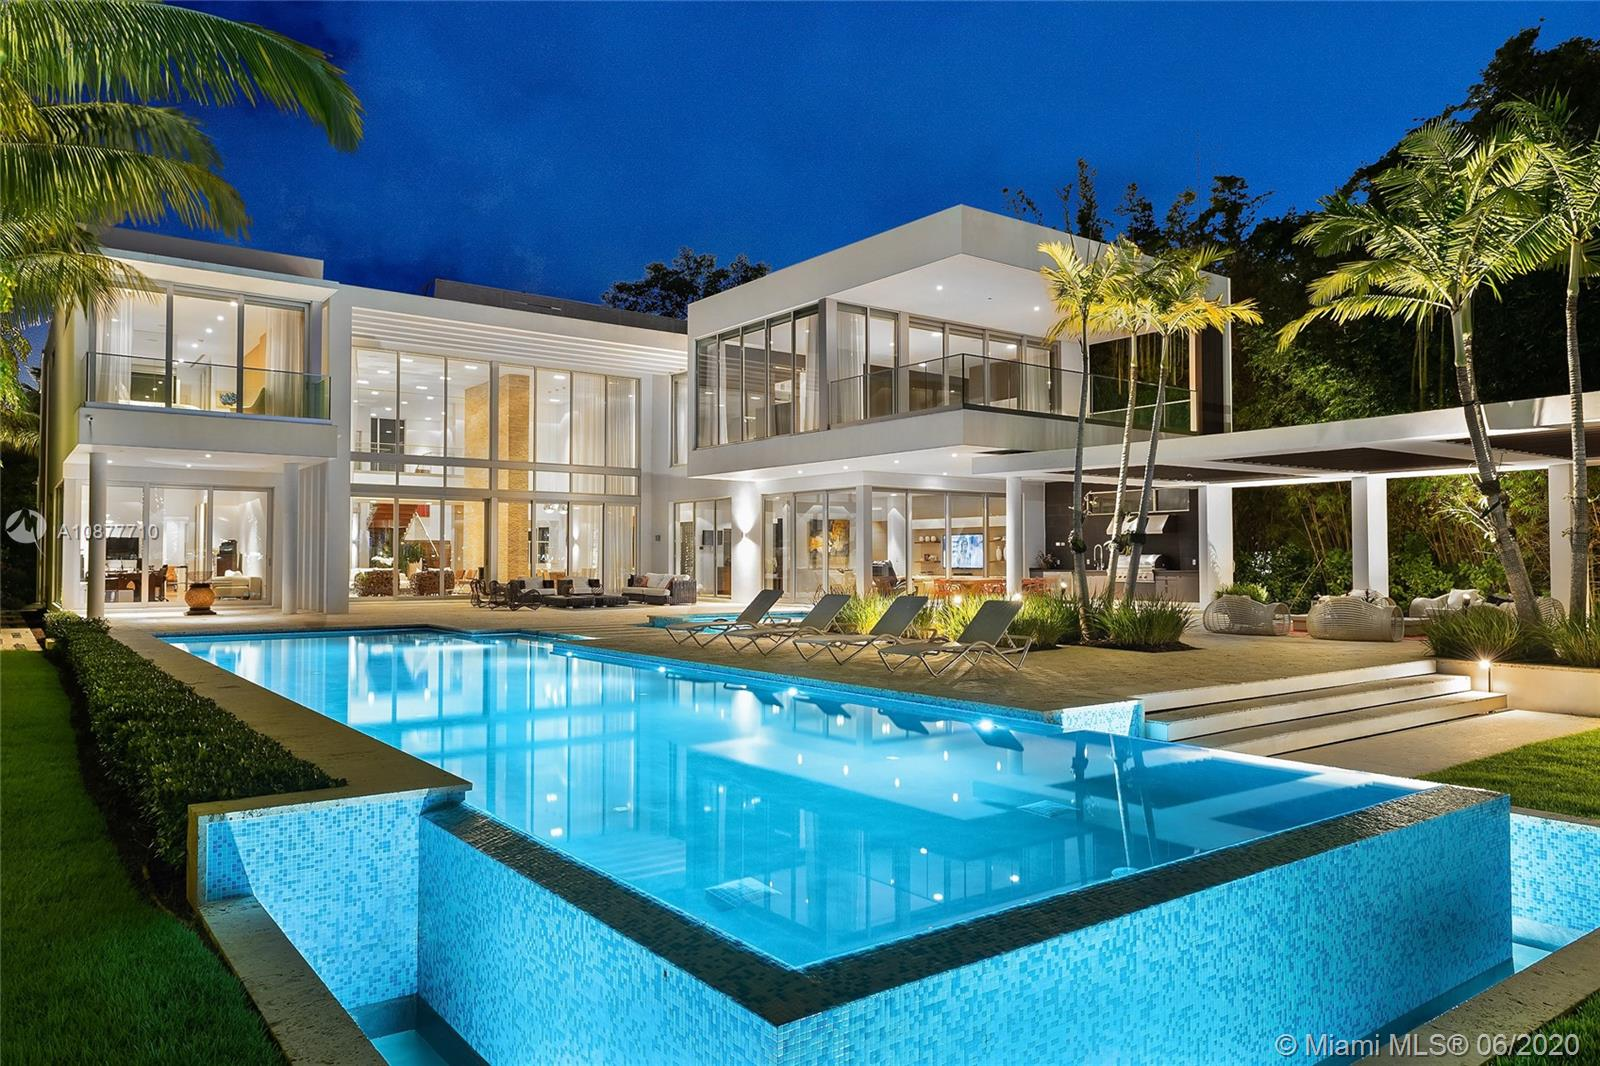 This modern 2-story estate on guard-gated Palm Island was magnificently redesigned and sits on a manicured 32,000 SF lot w/100' of waterfront & 13,144 total SF. The home features 9BR/8+1BA, soaring ceilings, rich hardwood floors & expansive living, dining & family areas all with stunning water and city views. A gourmet kitchen sports top-of-the line appliances, a family room, a movie theater, elevator, pet room, 4-car garage, staff rooms, recreation room and a full gym. The 2nd floor principal suite is spacious w/views to the pool, dual walk-in closets and beautiful Carrara marble bathroom. Outdoor features include a large pool w/Jacuzzi, covered seating area with summer kitchen, an IPE wood dock & direct access to Biscayne Bay & the Ocean. Amazing design and unequalled amenities.